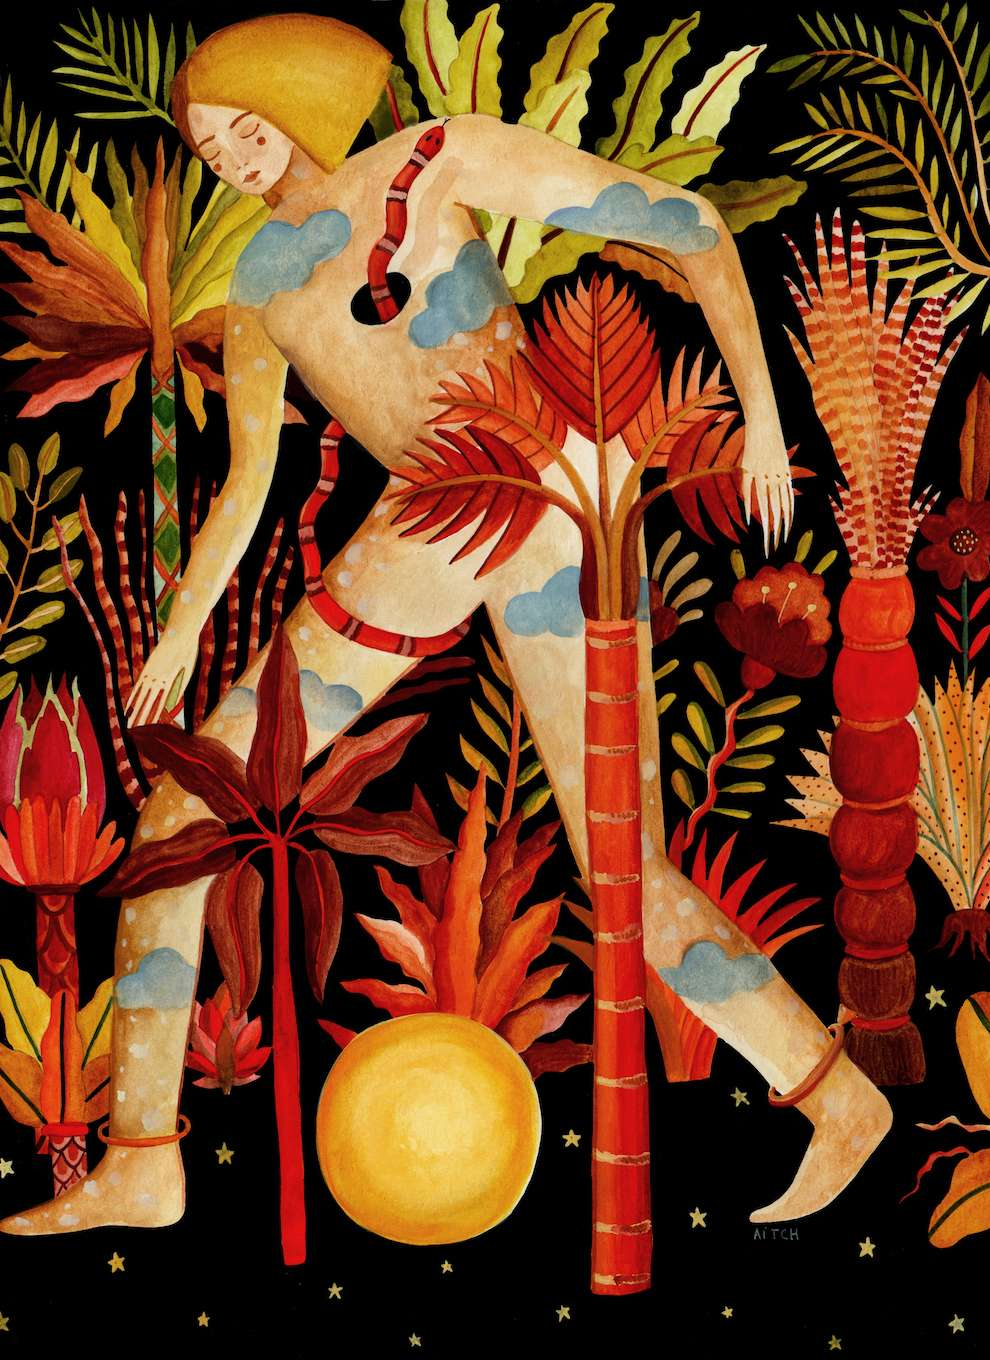 Aitch, Handpainted folk illustration of a naked woman walking through the jungle.